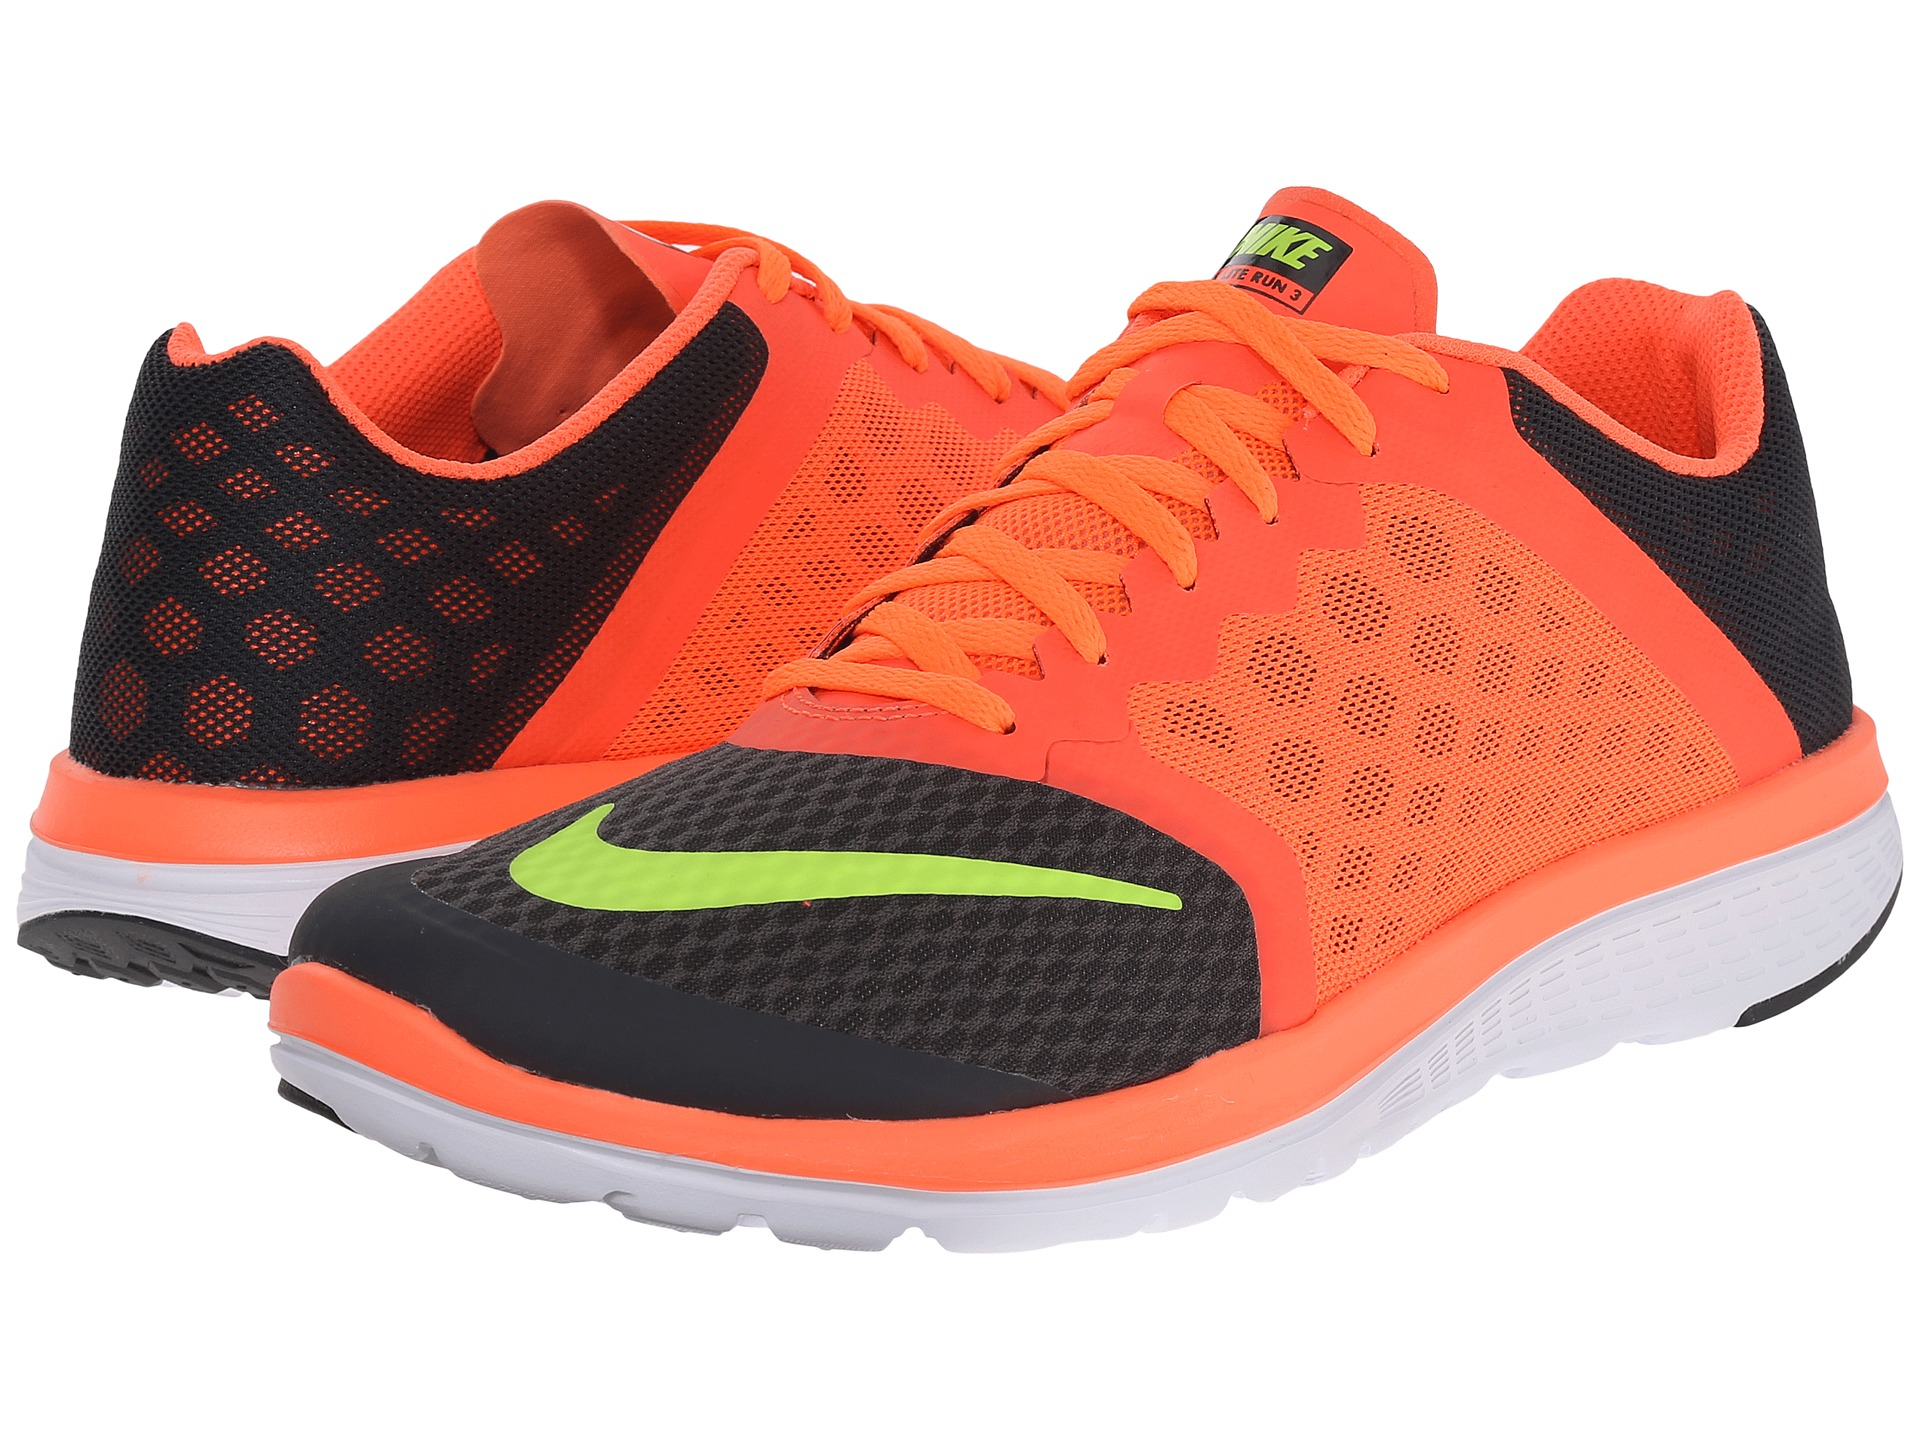 Cheap Nike FREE TRAINER 7.0 SHIELD Sneaker Freaker Fritzens